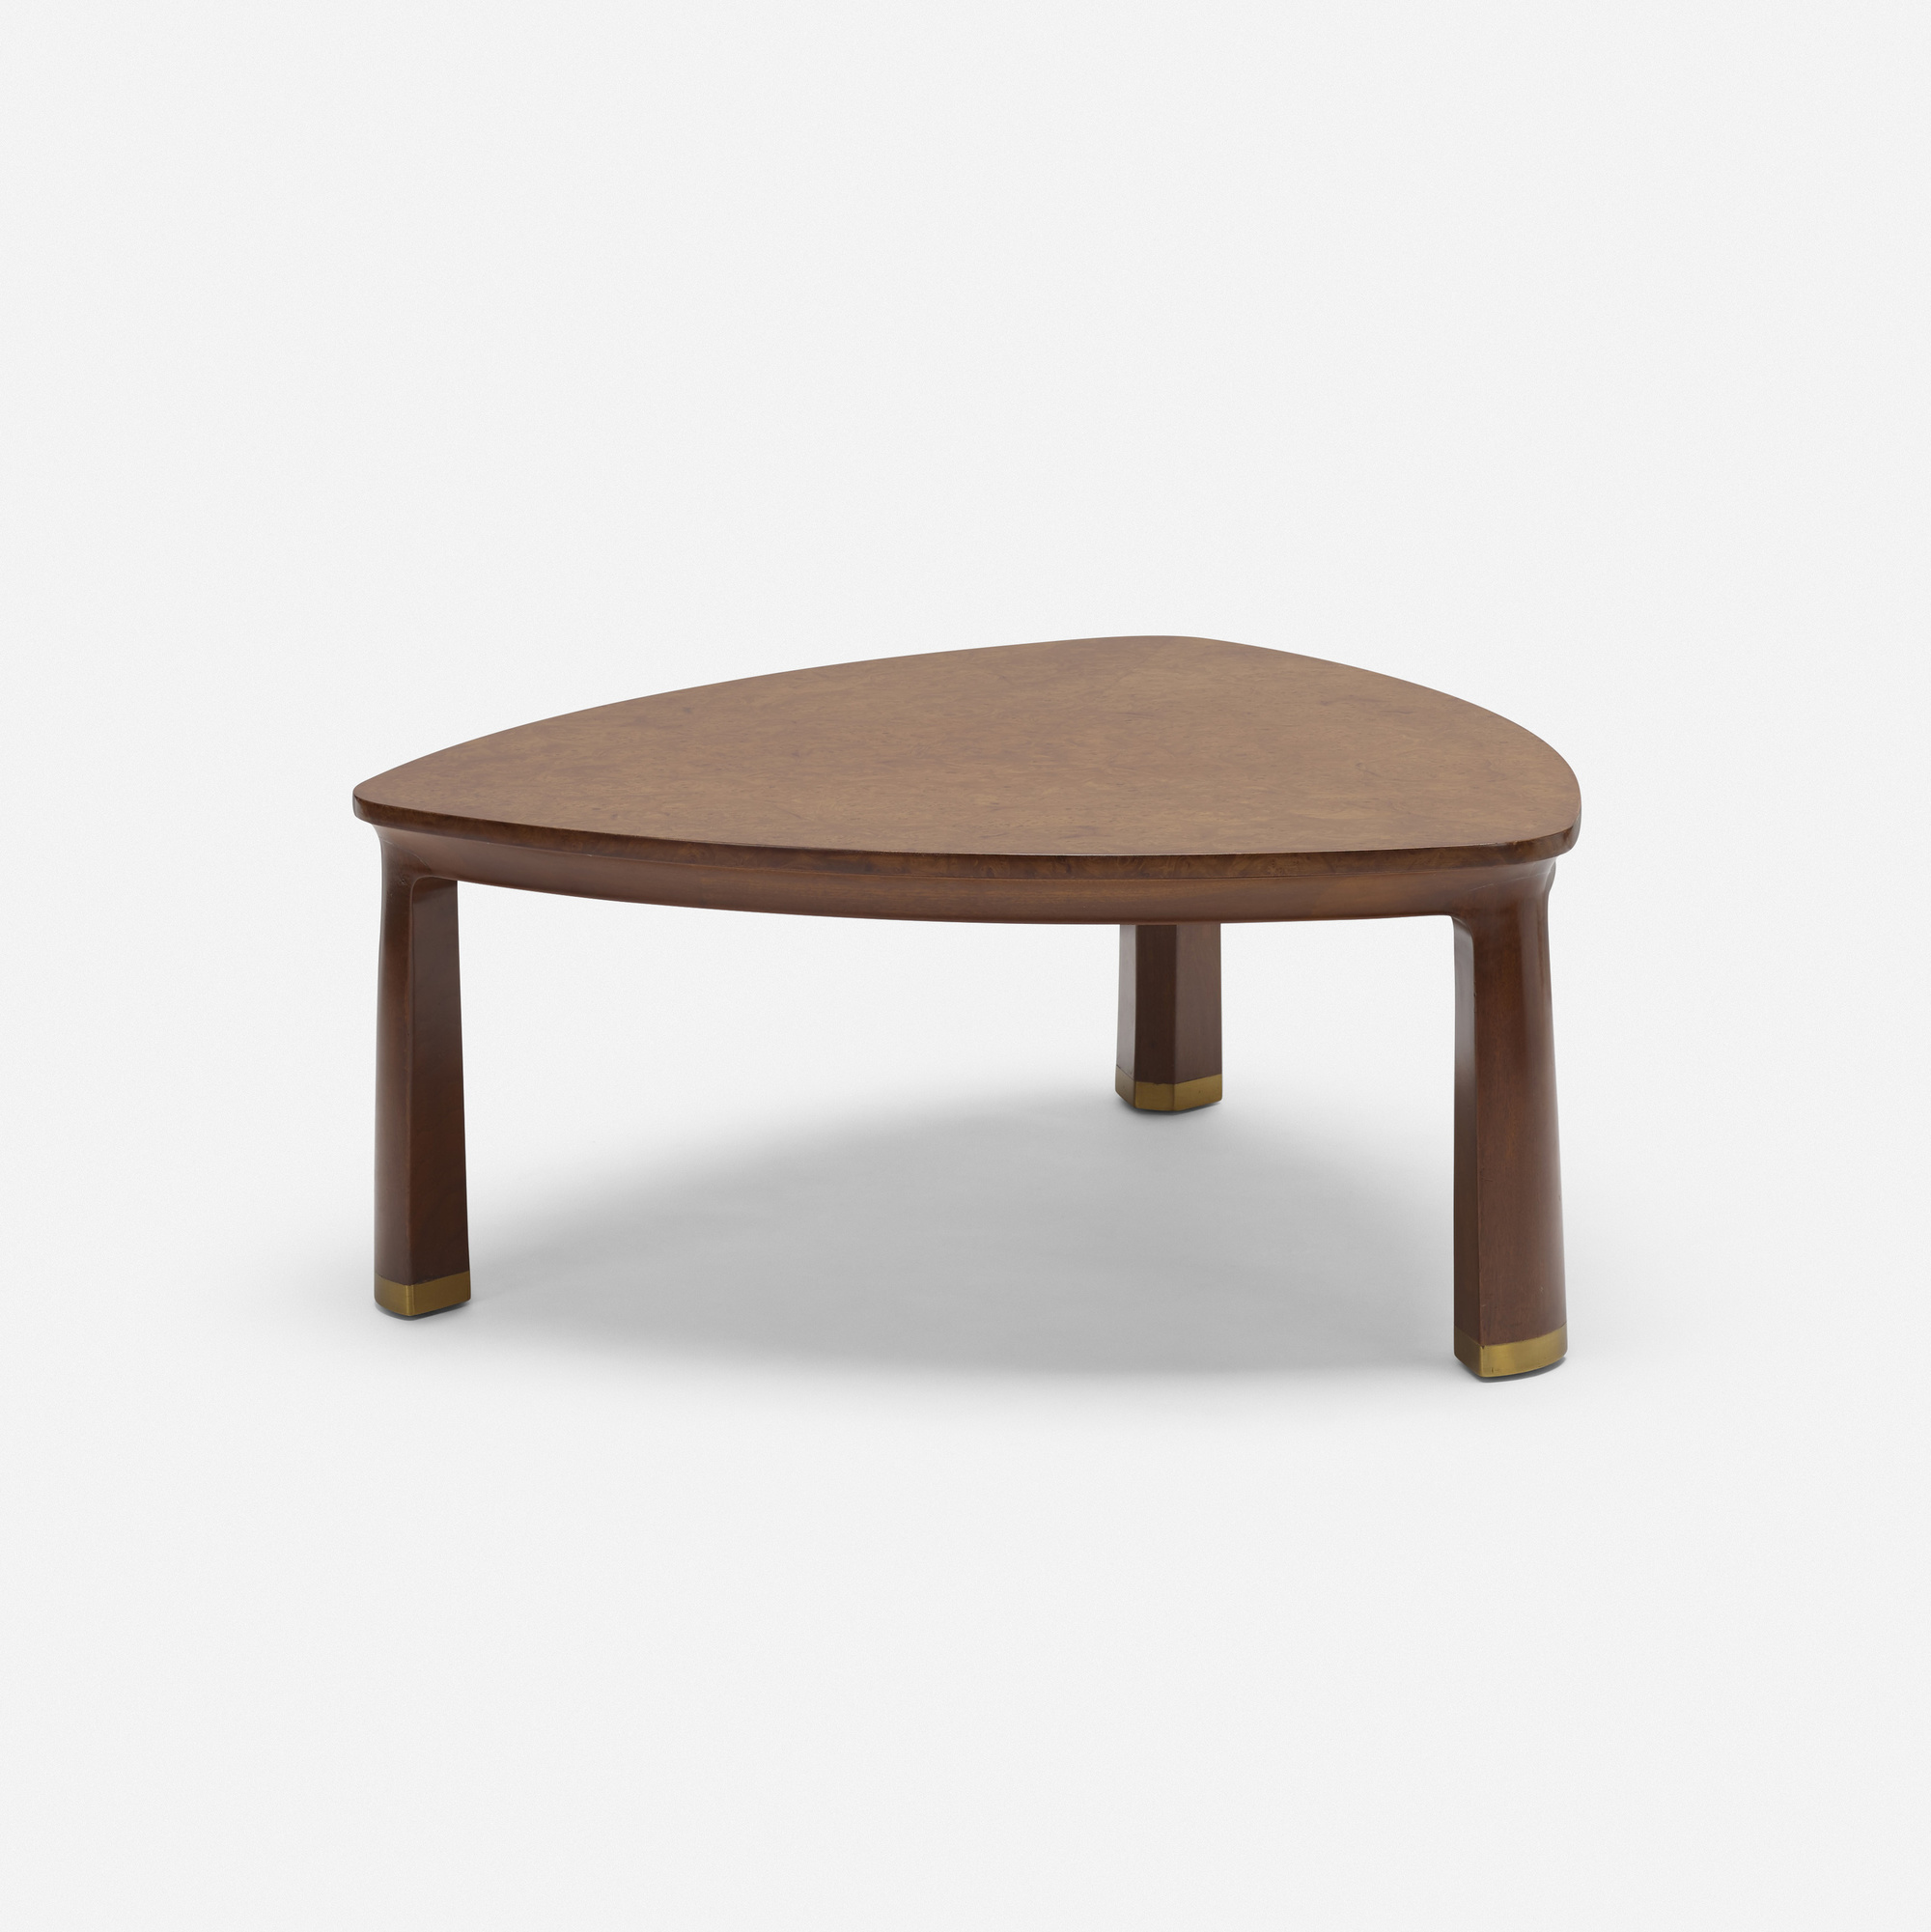 805: Edward Wormley / coffee table, model 6029 (1 of 2)